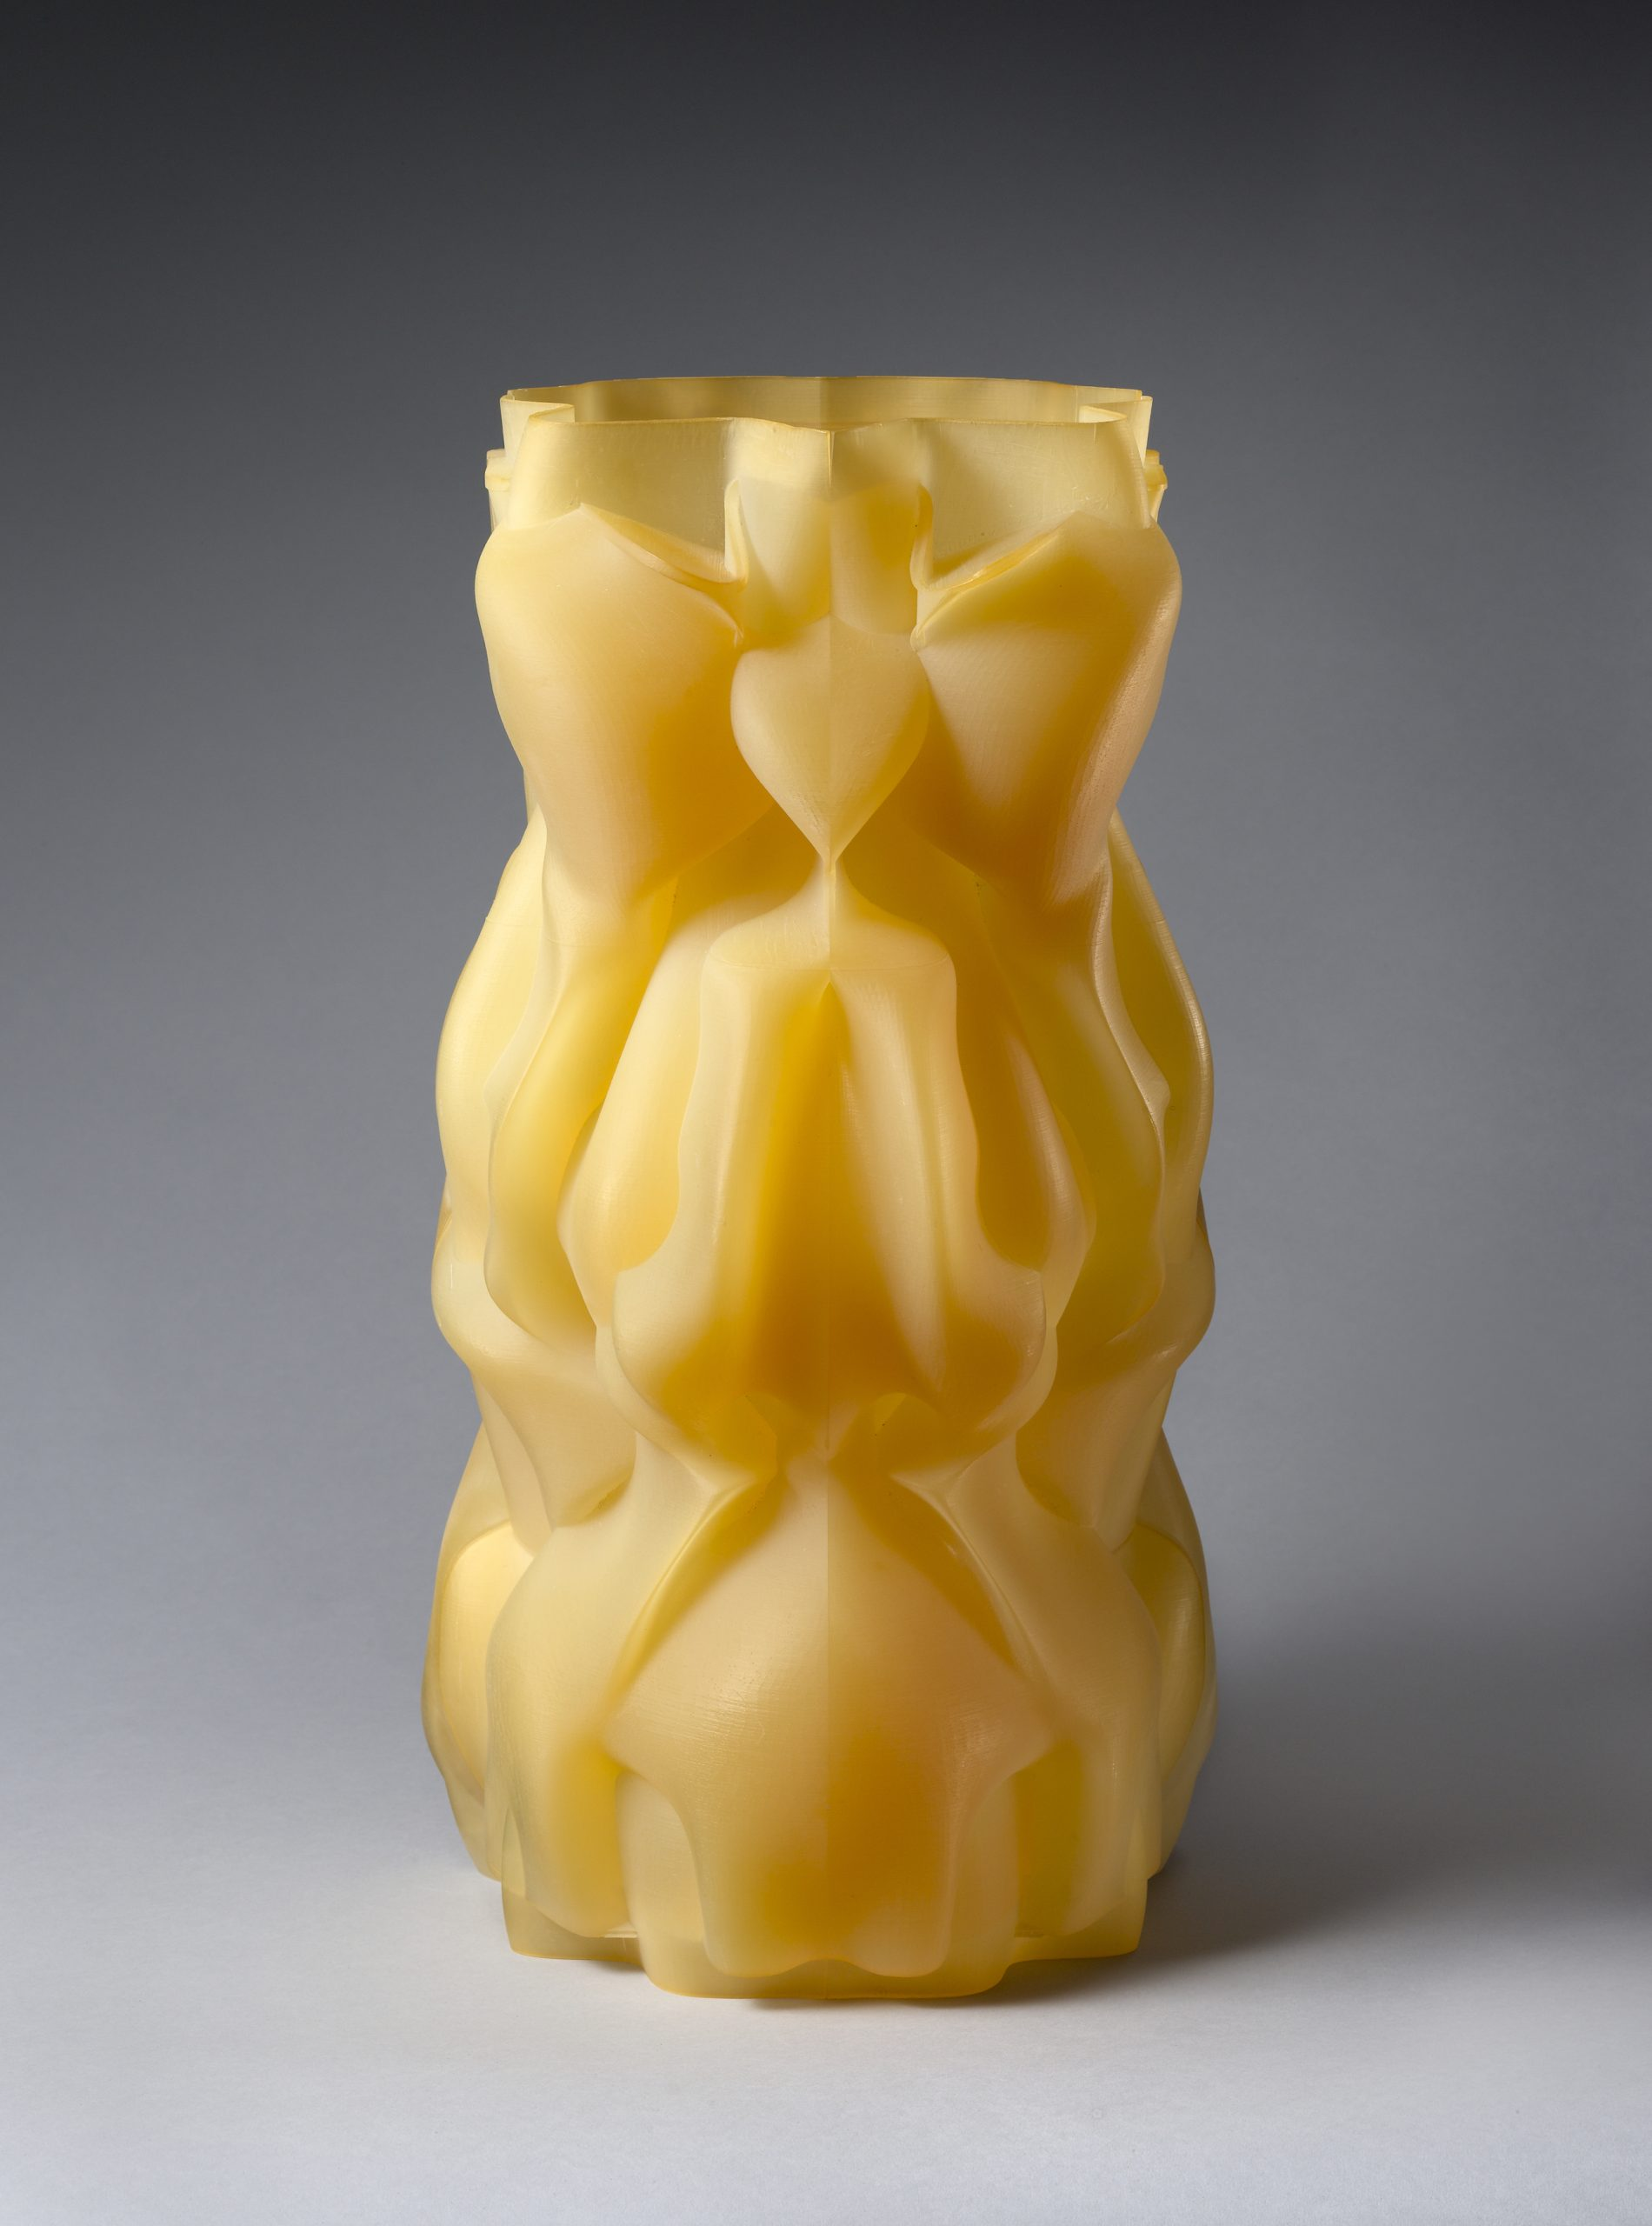 Translucent yellow abstract sculpture with multiple folds.